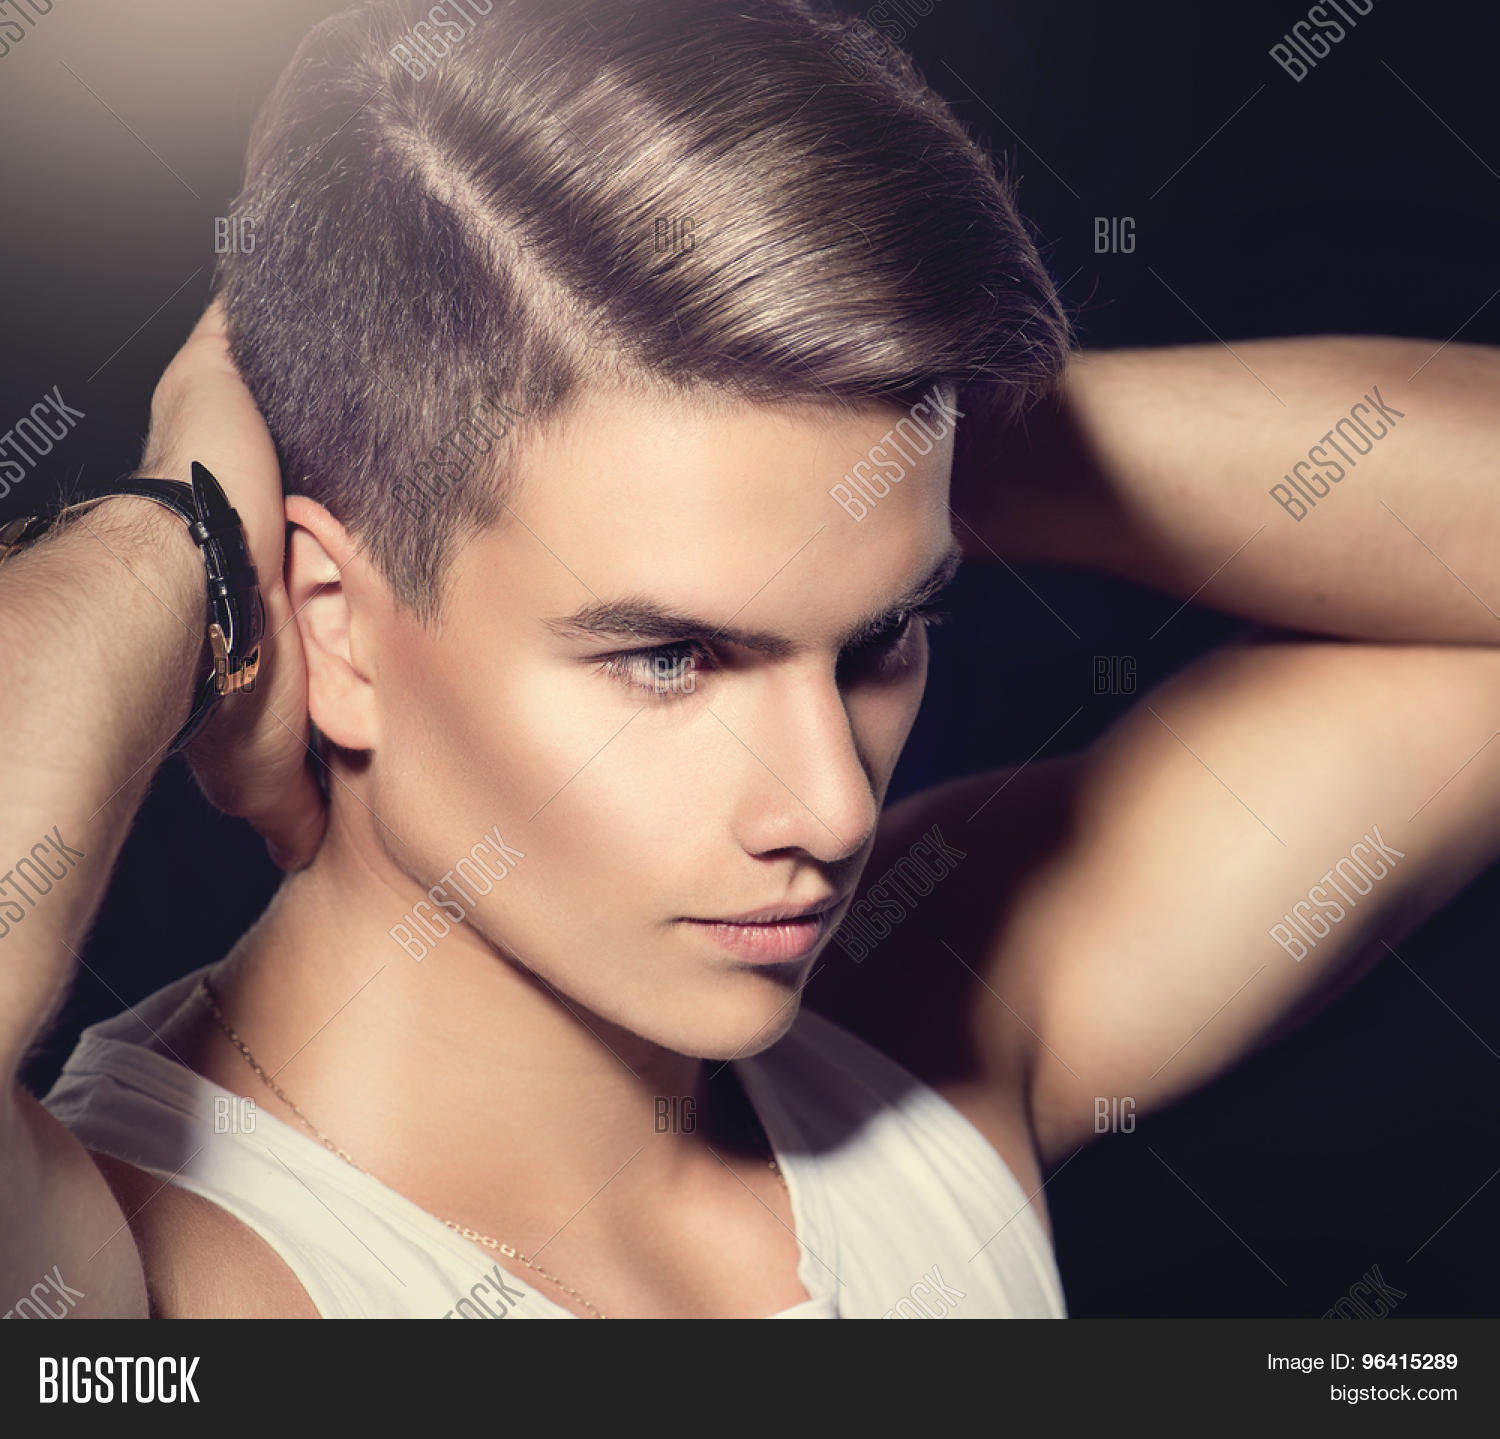 Handsome Young Man Fashion Young Model Man Portrait